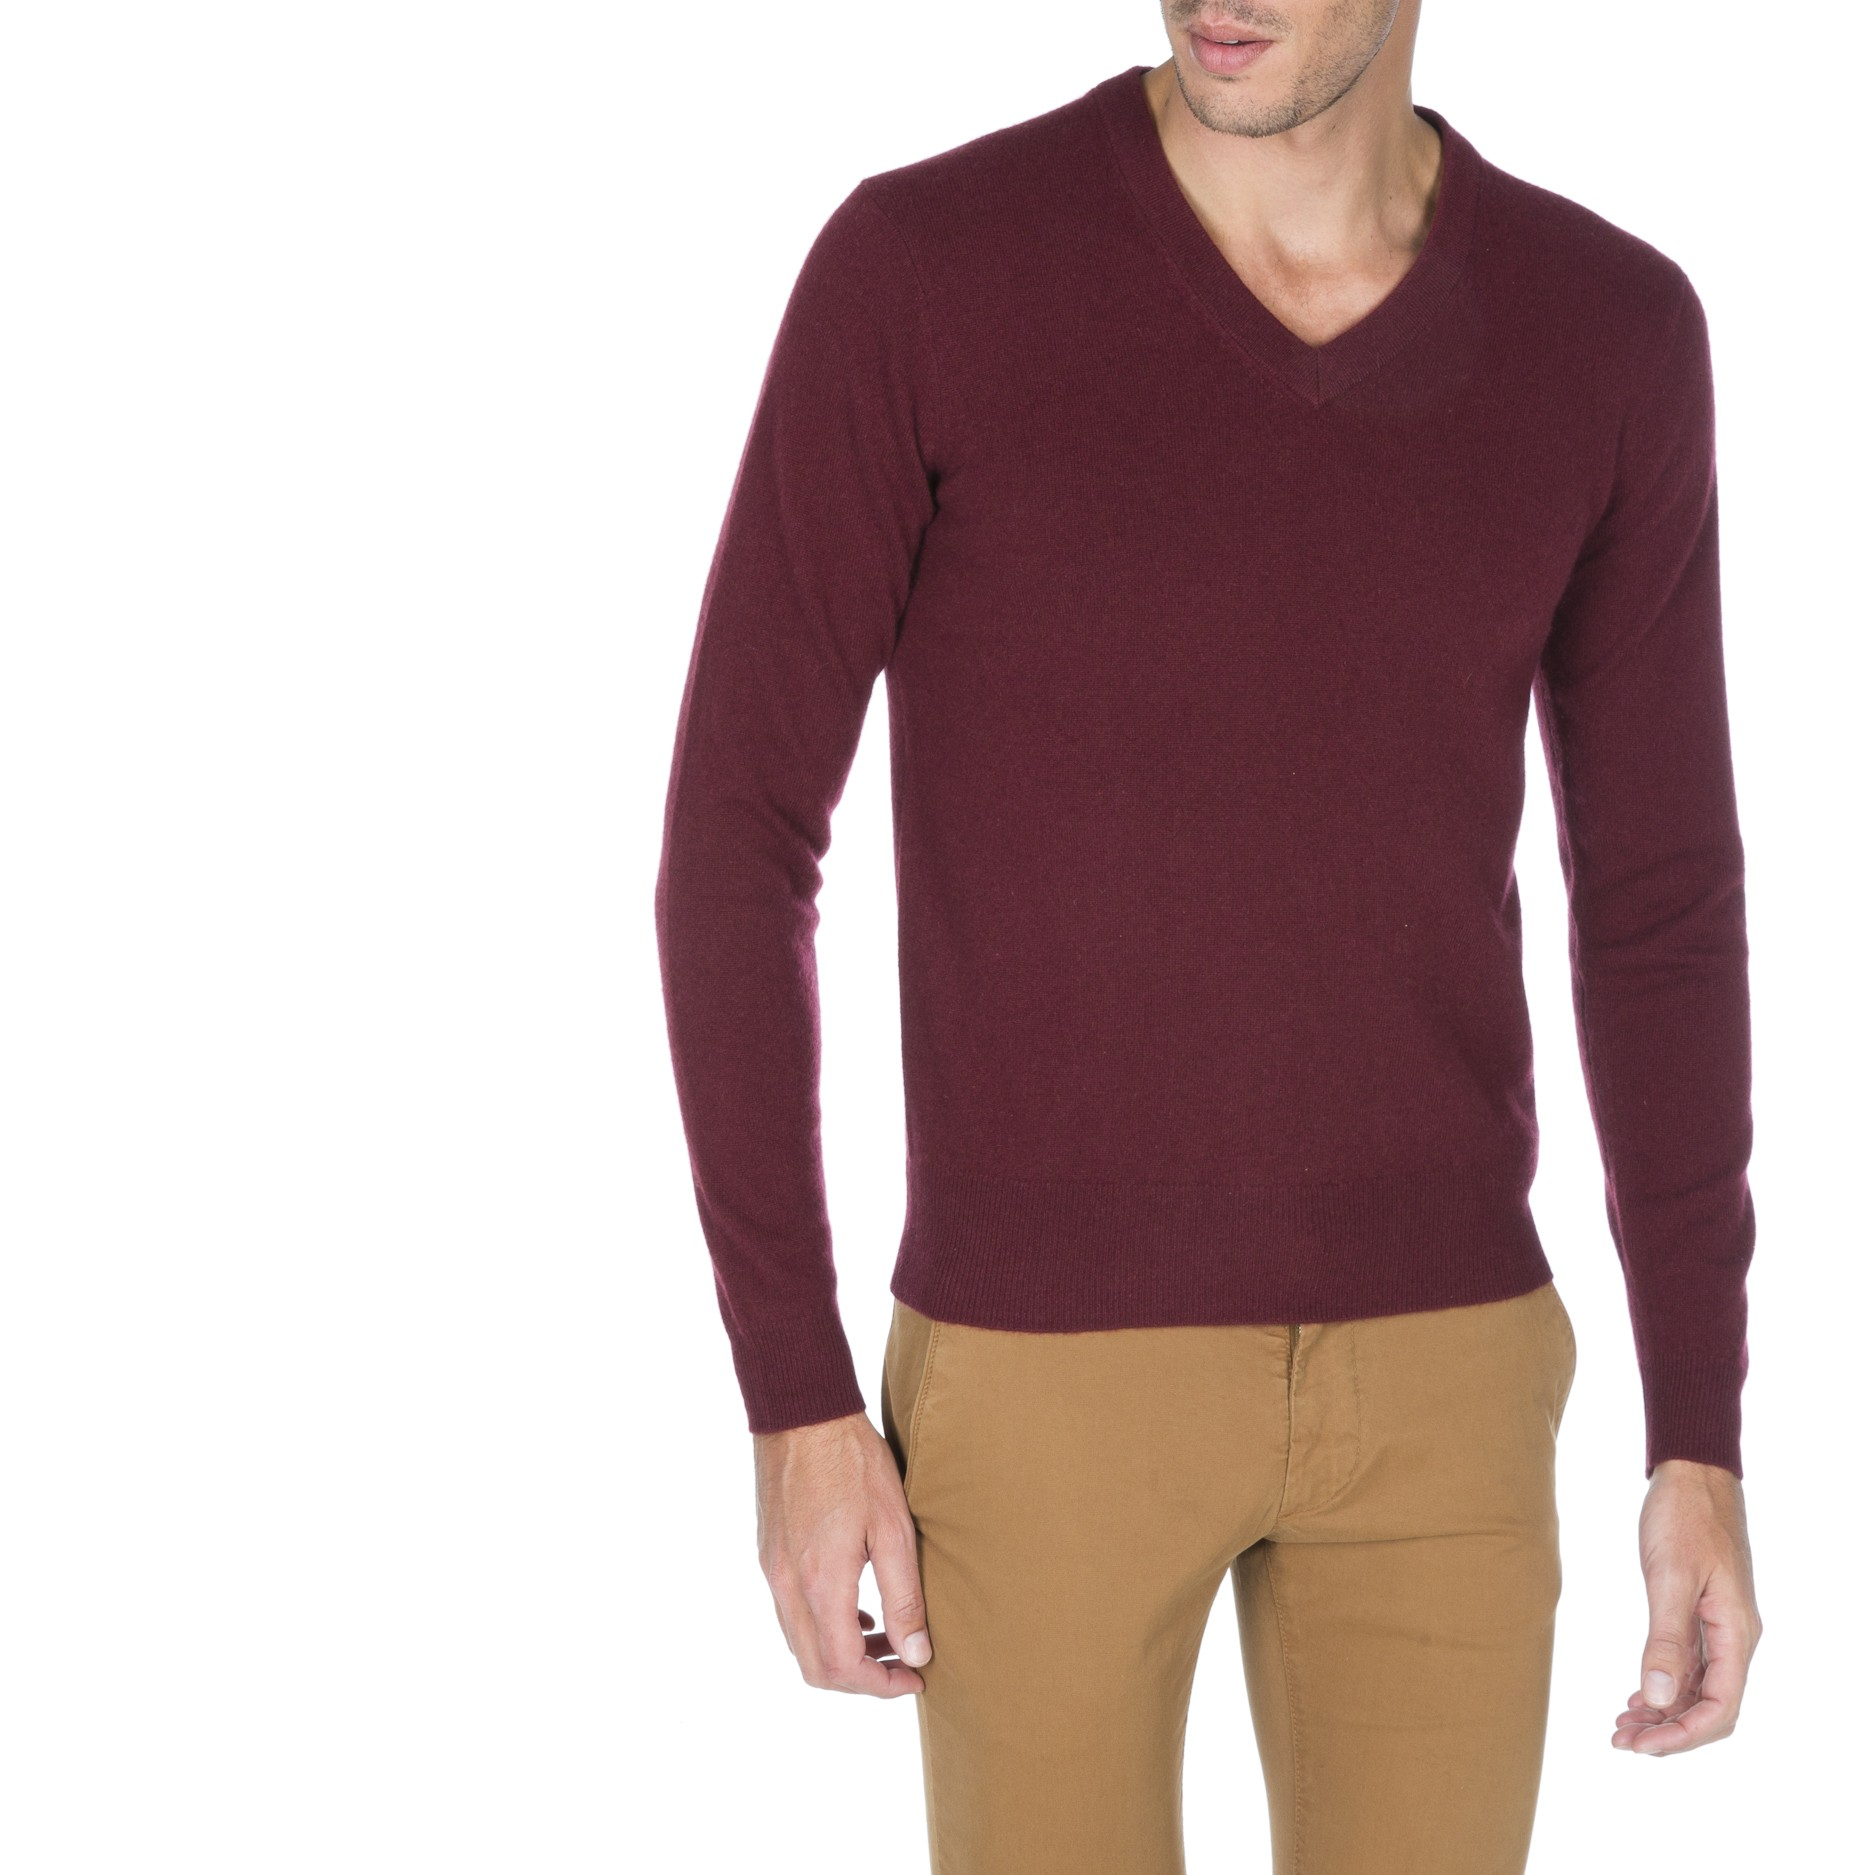 e5dff37d9a0 Pull col v homme - Laine et tricot